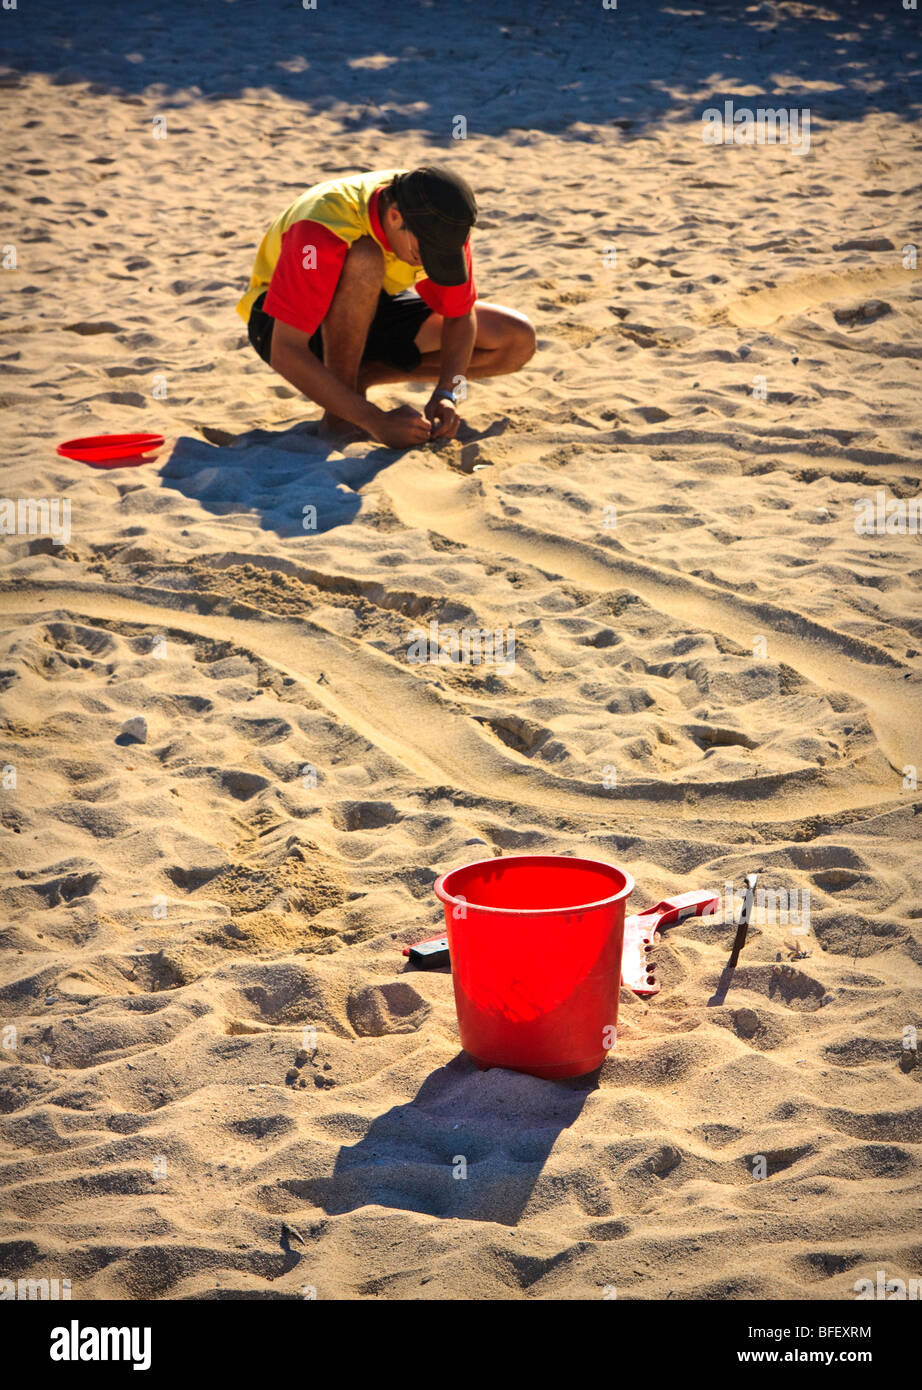 Vacation resort employee preparing bucket and markers for a contest, sandy beach, Cuba - Stock Image